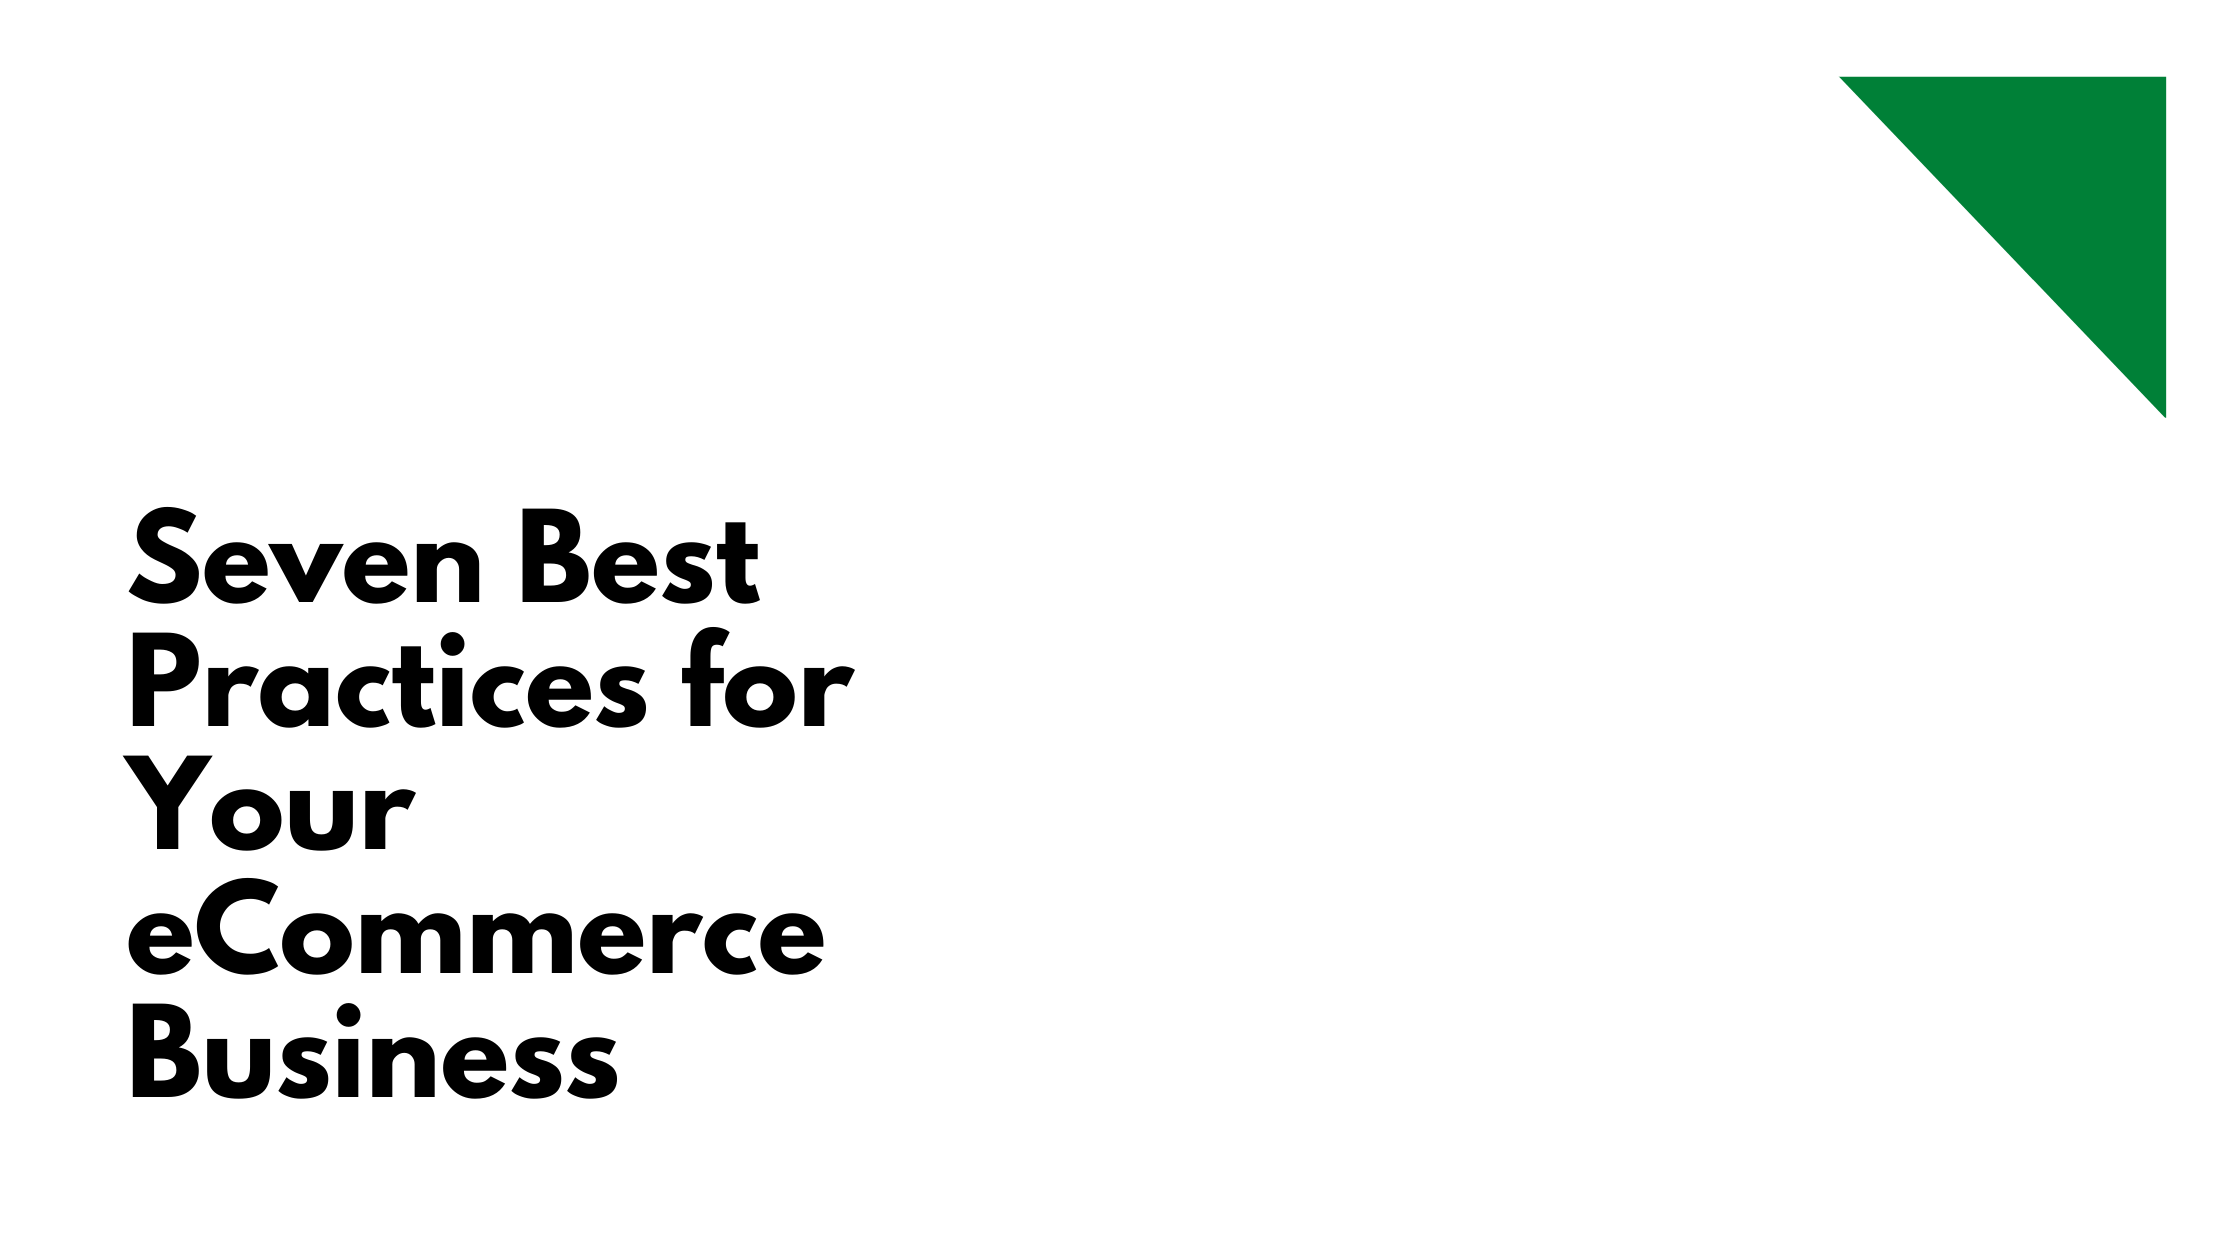 Seven Best Practices for Your E Commerce Business